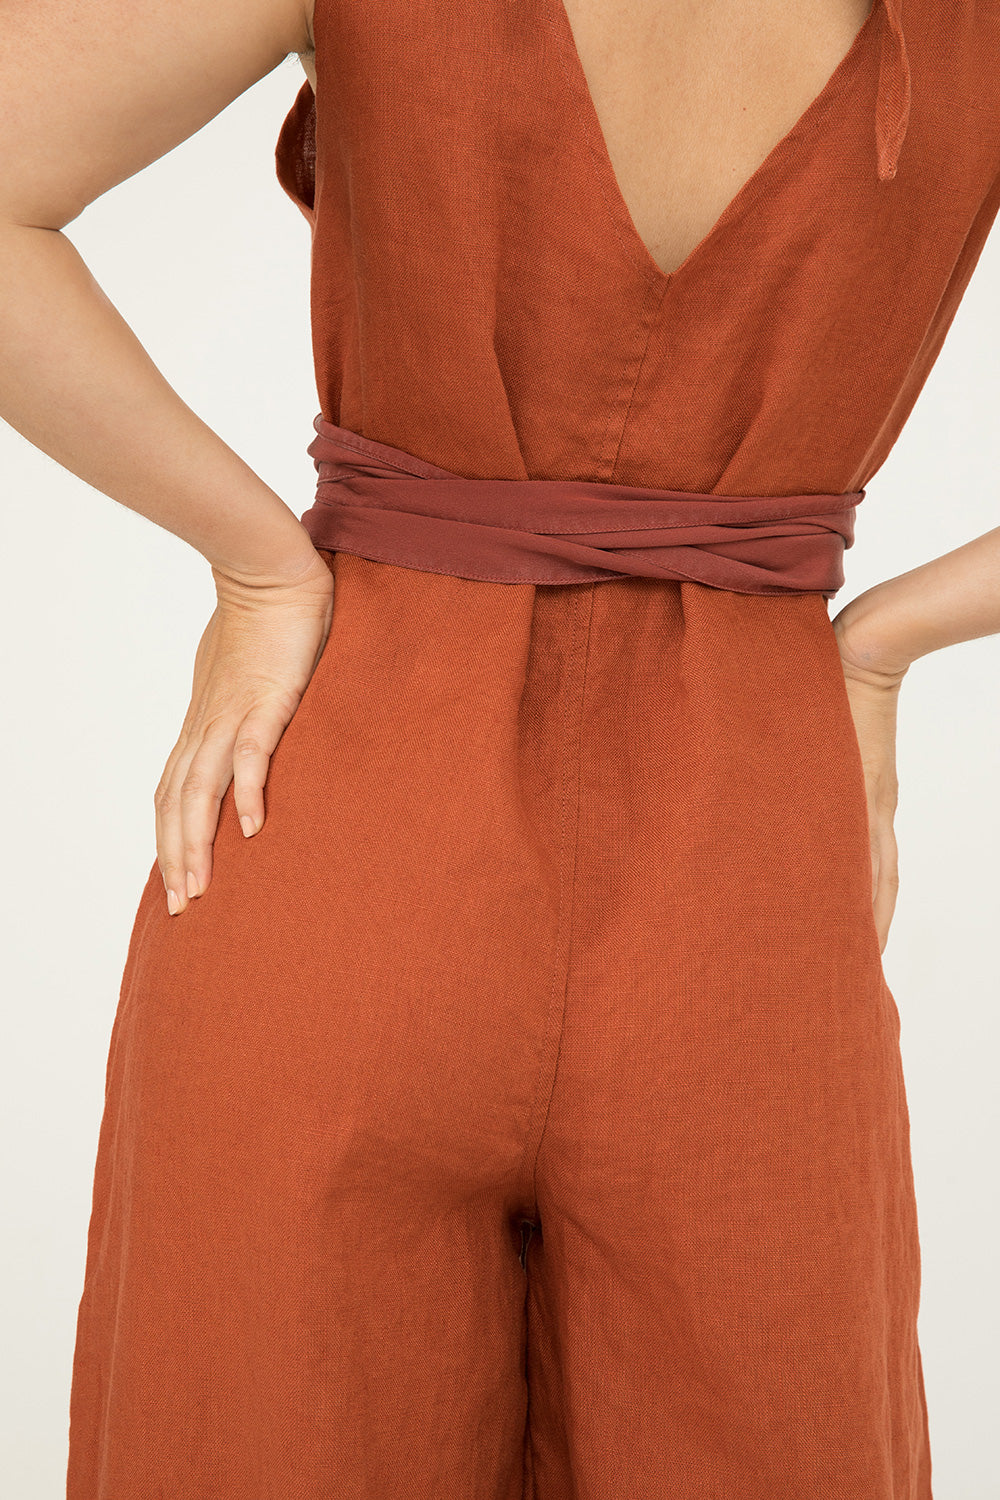 Asawa Tie Belt in Silk Crepe Rust - Molly-OSM